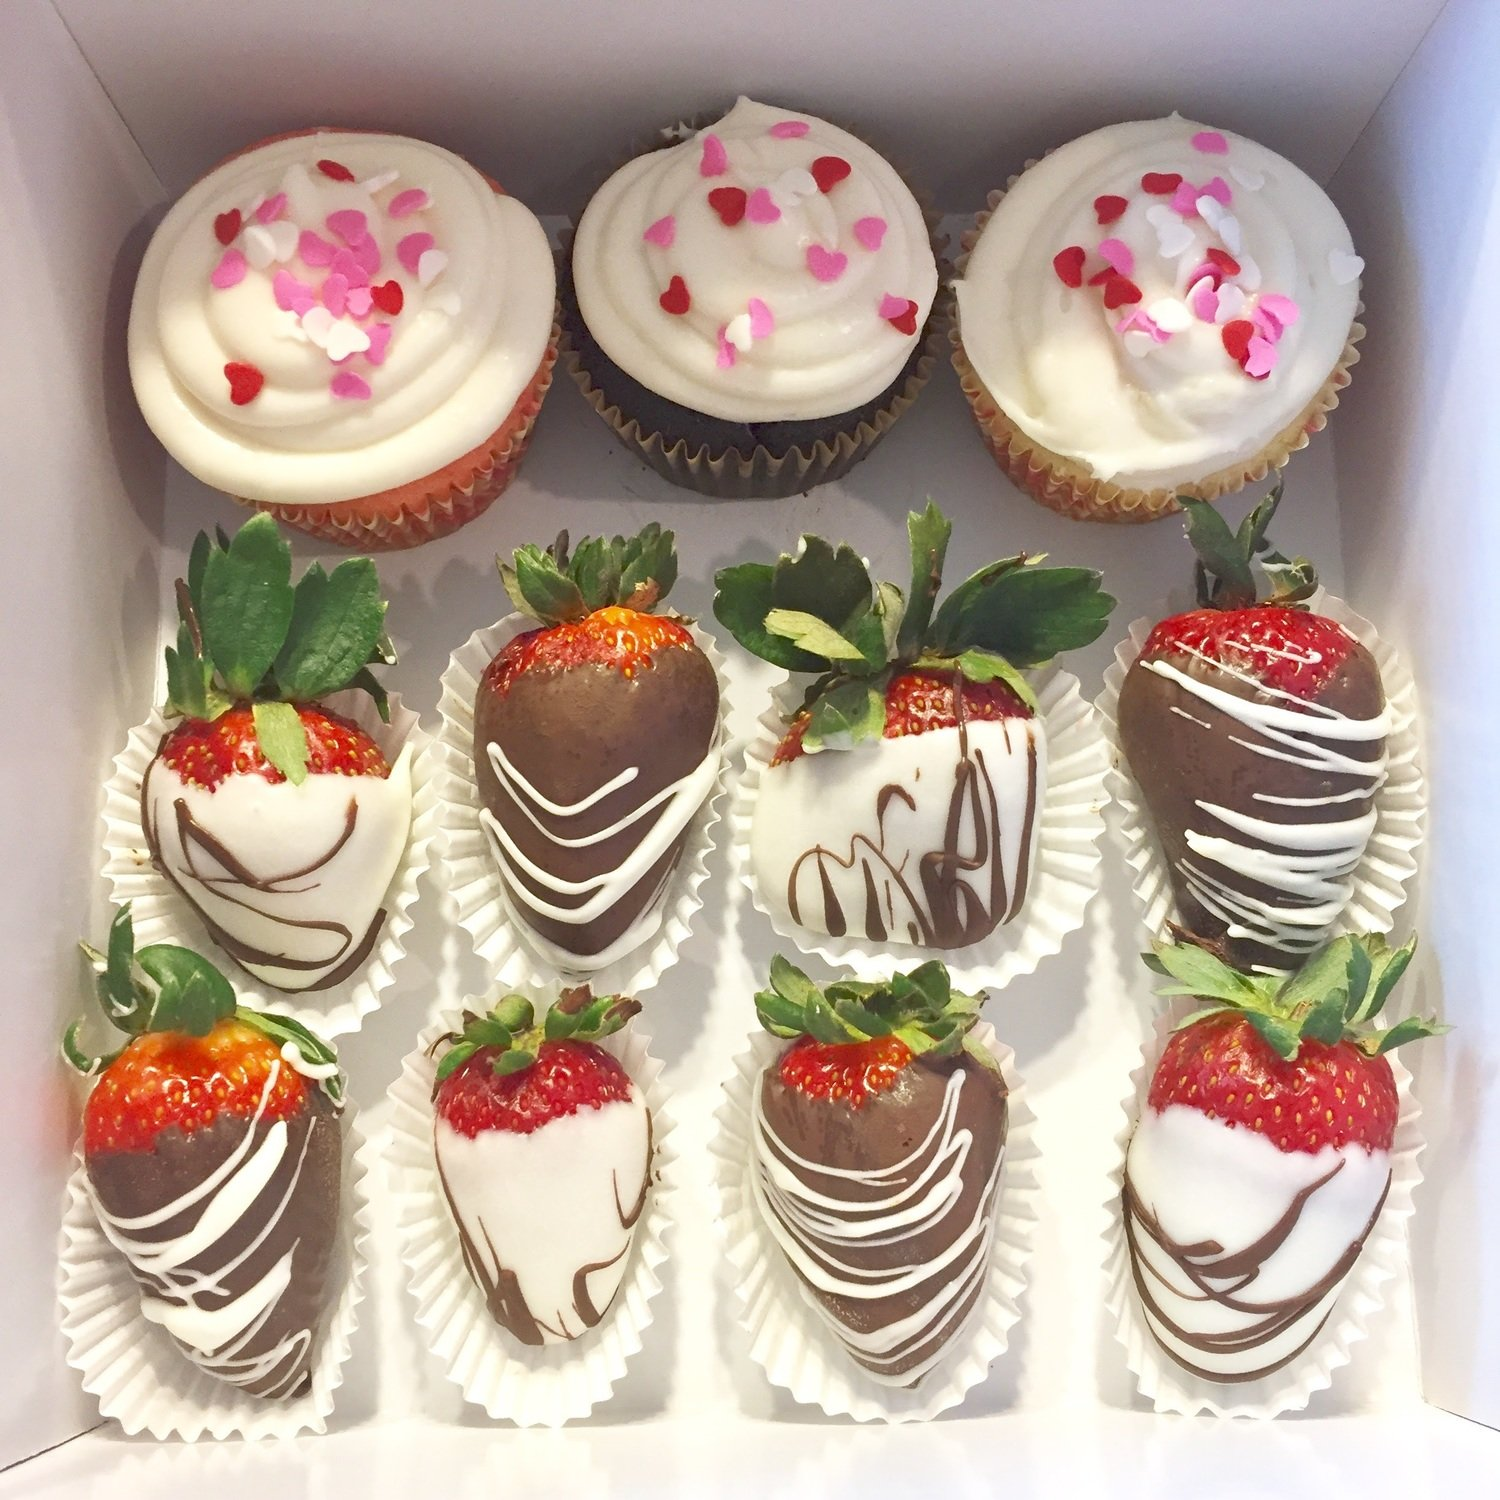 8 Gourmet Chocolate Covered Strawberries 3 Strawberry Mousse Filled Cupcake Combo In A Valentine Box